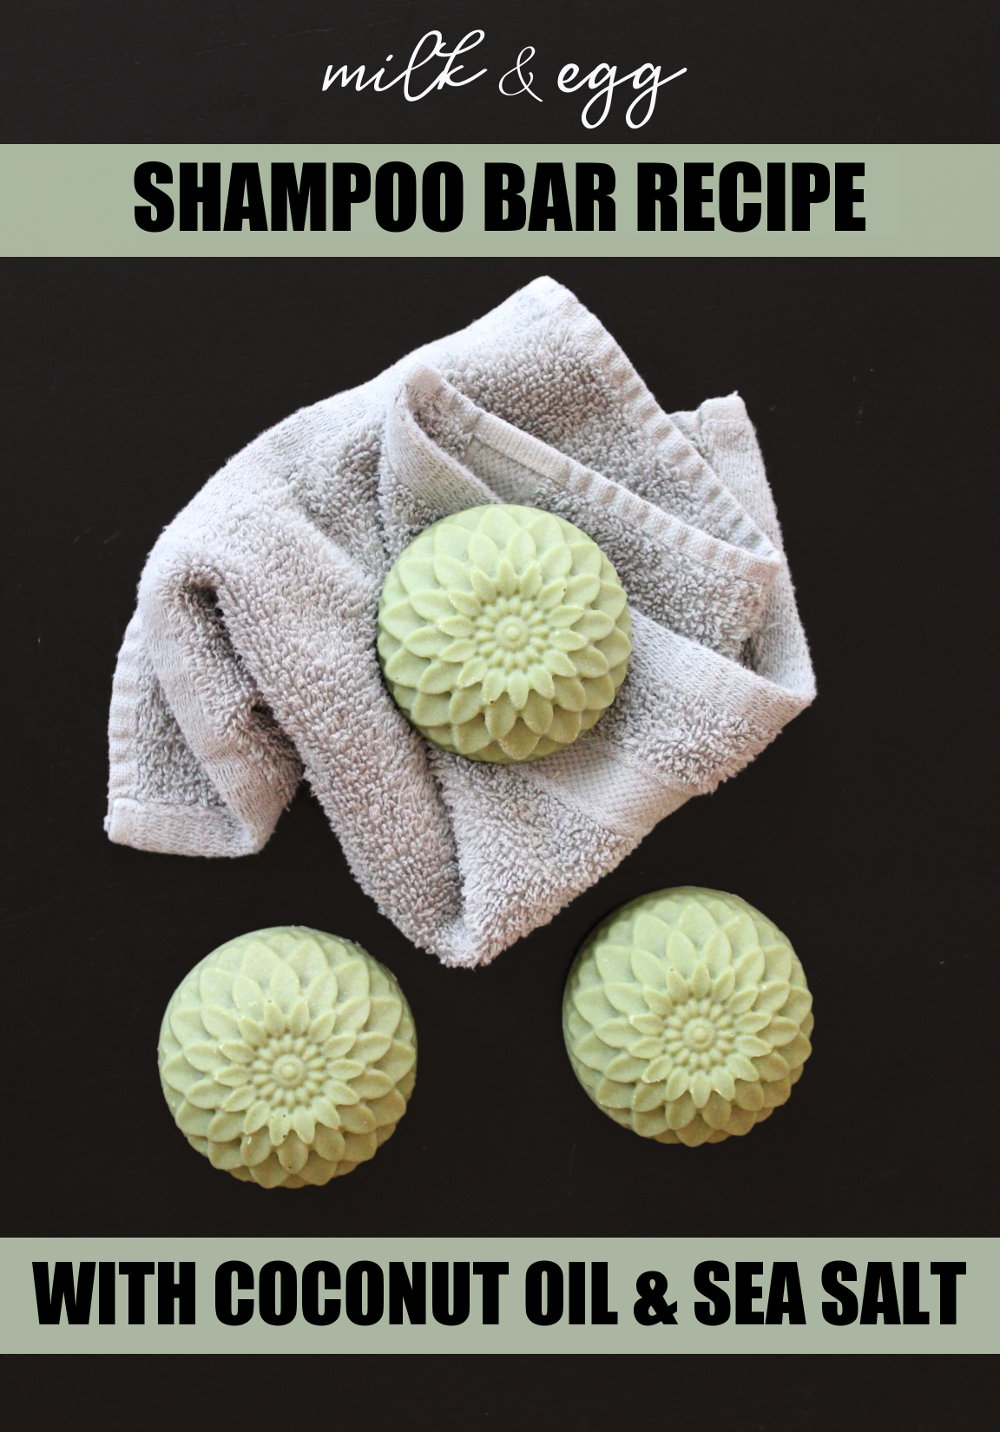 Sea Salt Shampoo Bar Recipe with Milk & Egg! Free of sulfates and surfactants, this sea salt shampoo bar recipe is made with simple ingredients for a healthy, natural hair care solution. Formulated using coconut oil for strong, shiny hair, this natural sea salt shampoo bar recipe also contains milk and egg to moisturize and condition hair. While ginger essential oil and sea kelp are also added for their hair care benefits. #shampoo #shampoobar #saltbar #soap #soapmaking #soaprecipe #haircare #diy #natural #essentialoils #milksoap #eggsoap